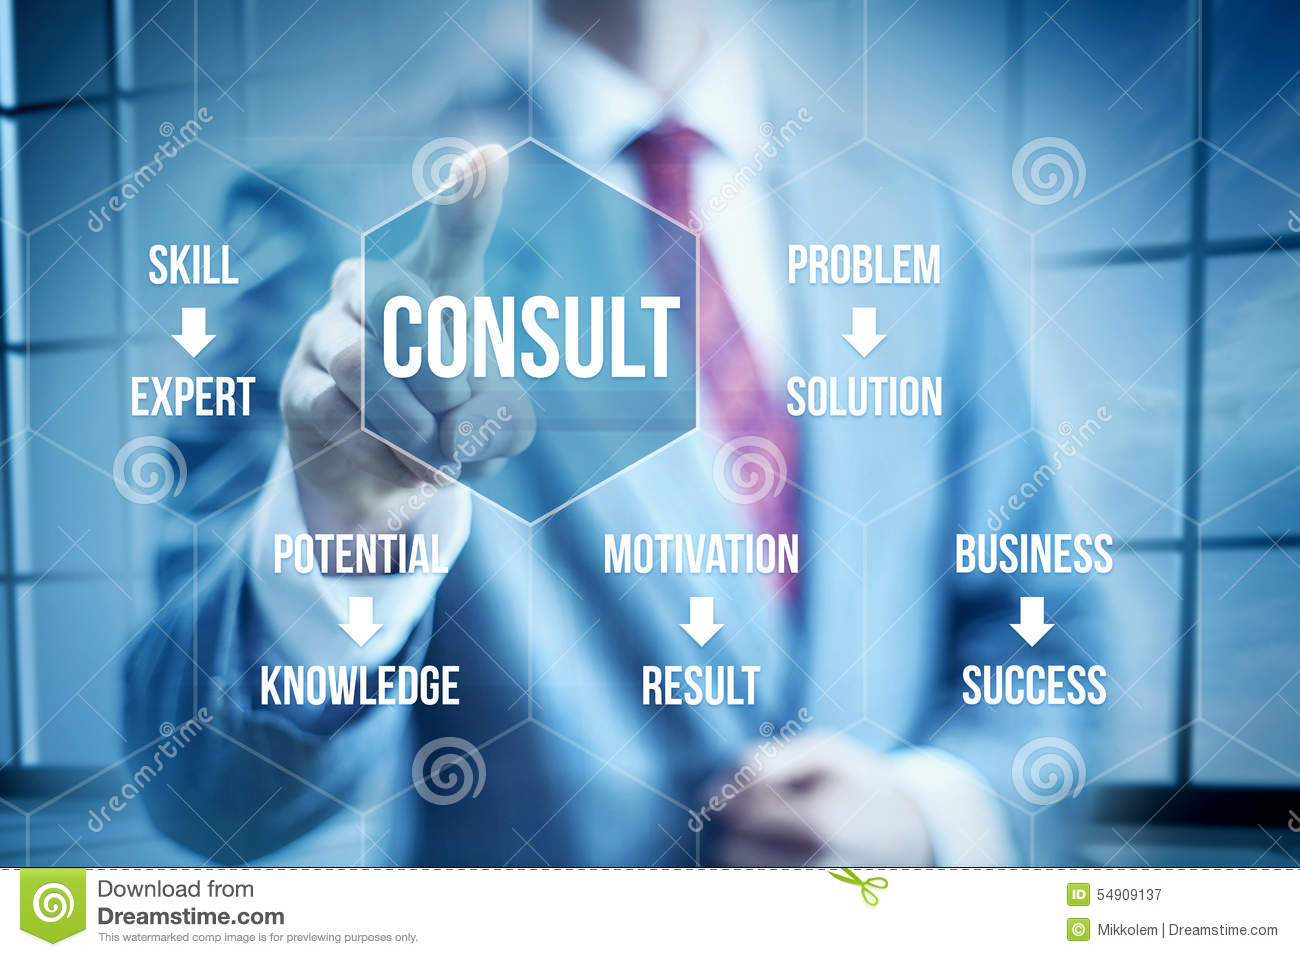 Your first job in recruitment consulting: typical tasks graduates can expect